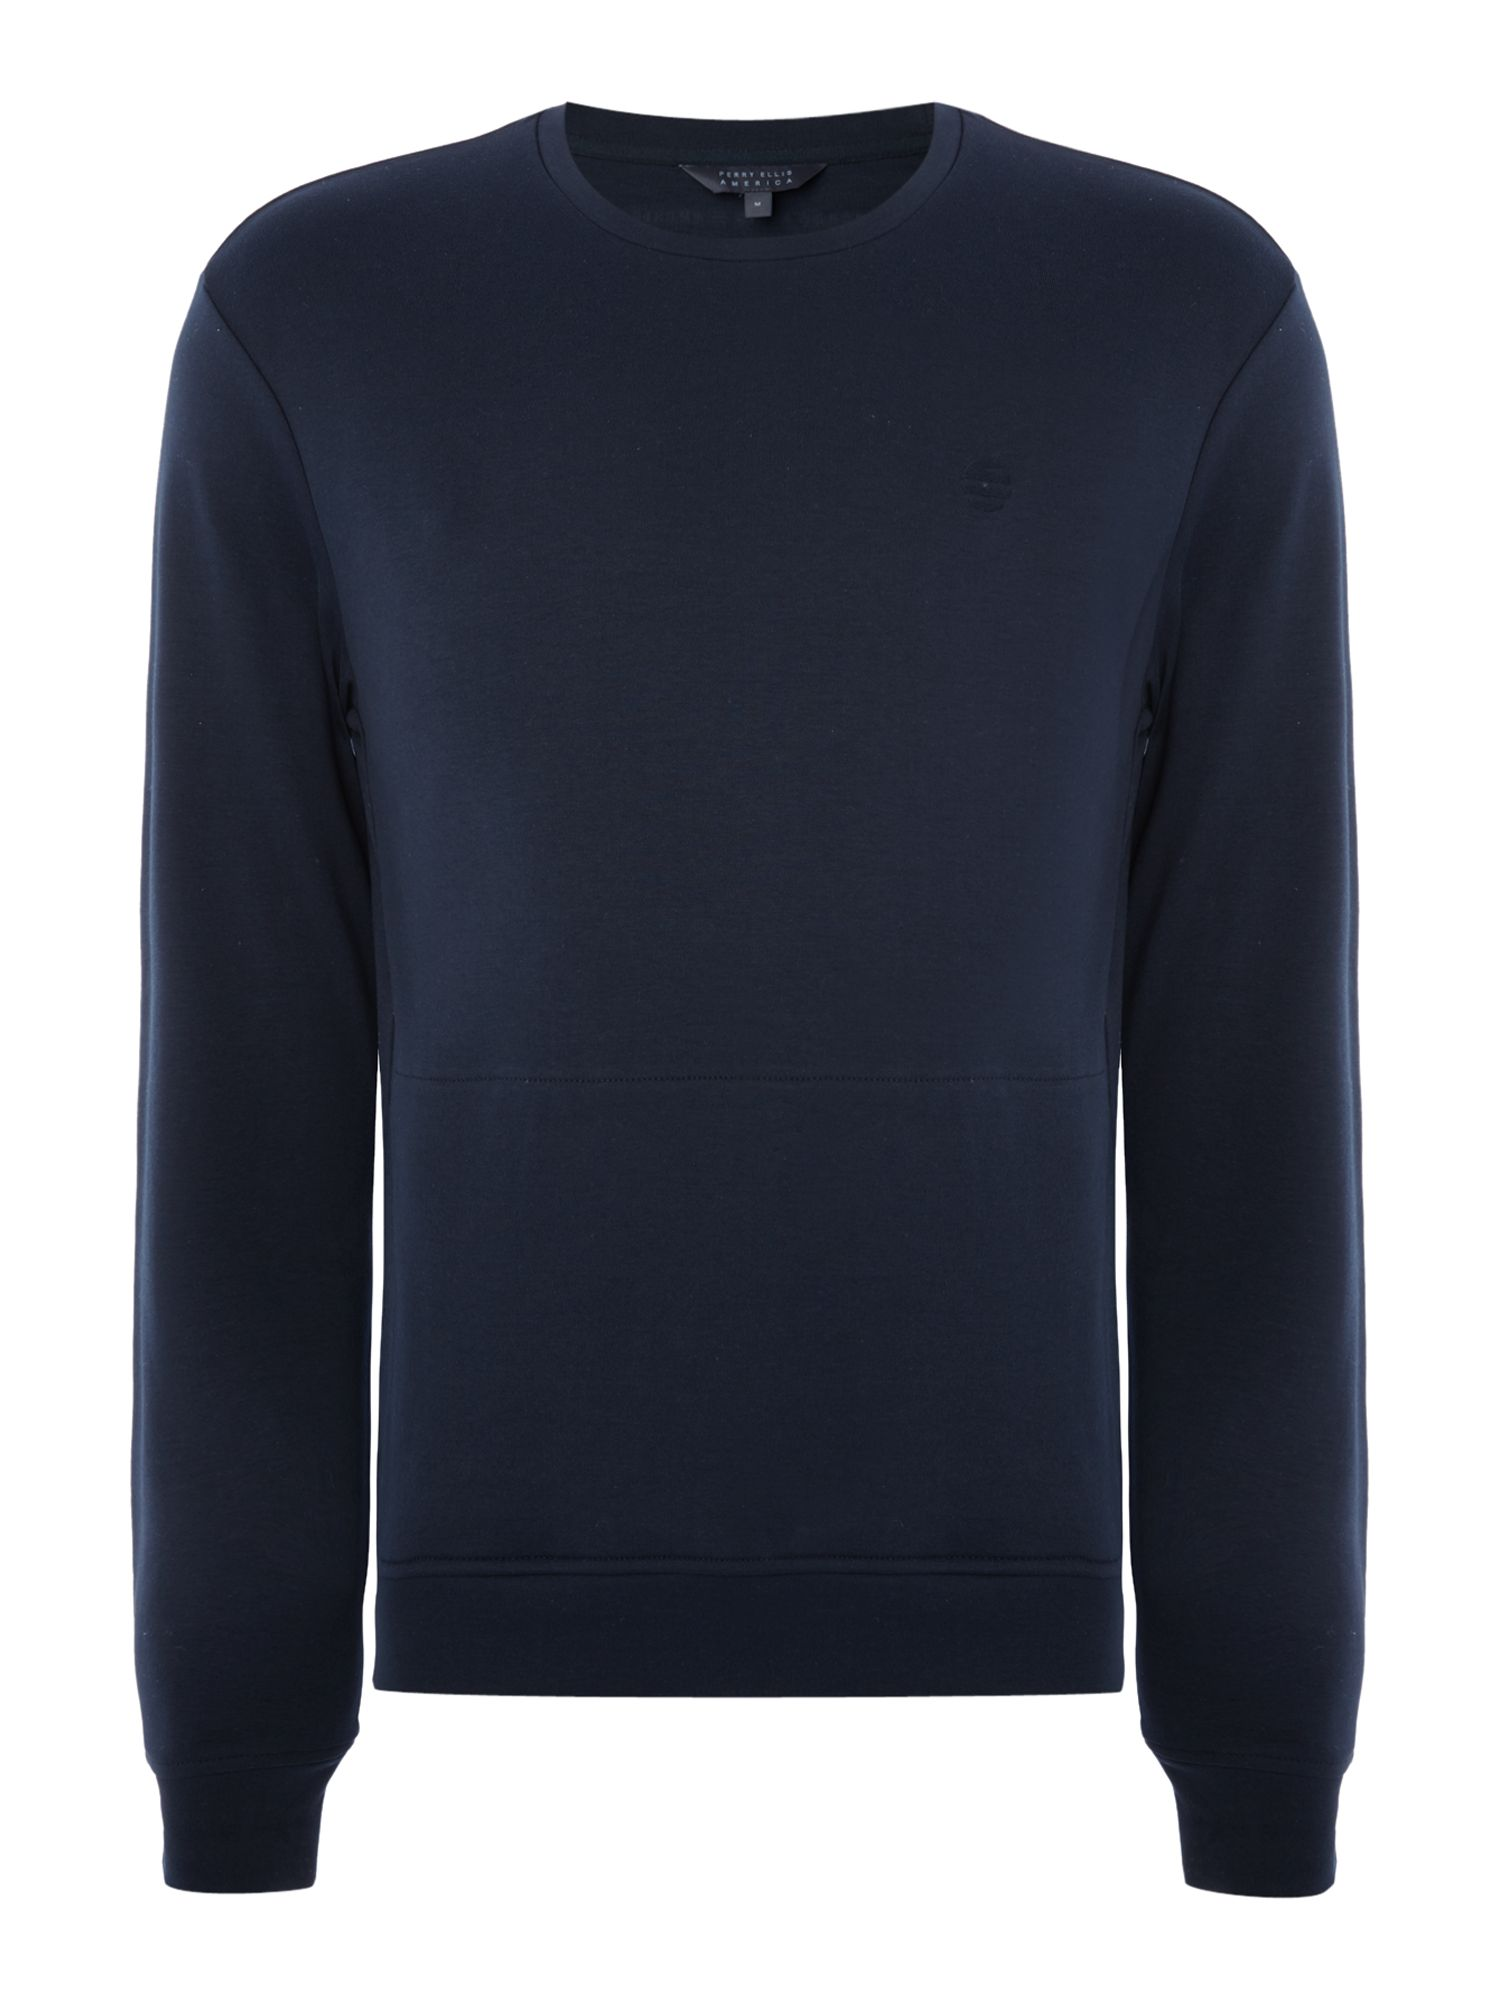 Men's Perry Ellis America Archive Crew Neck Logo Sweatshirt, Blue